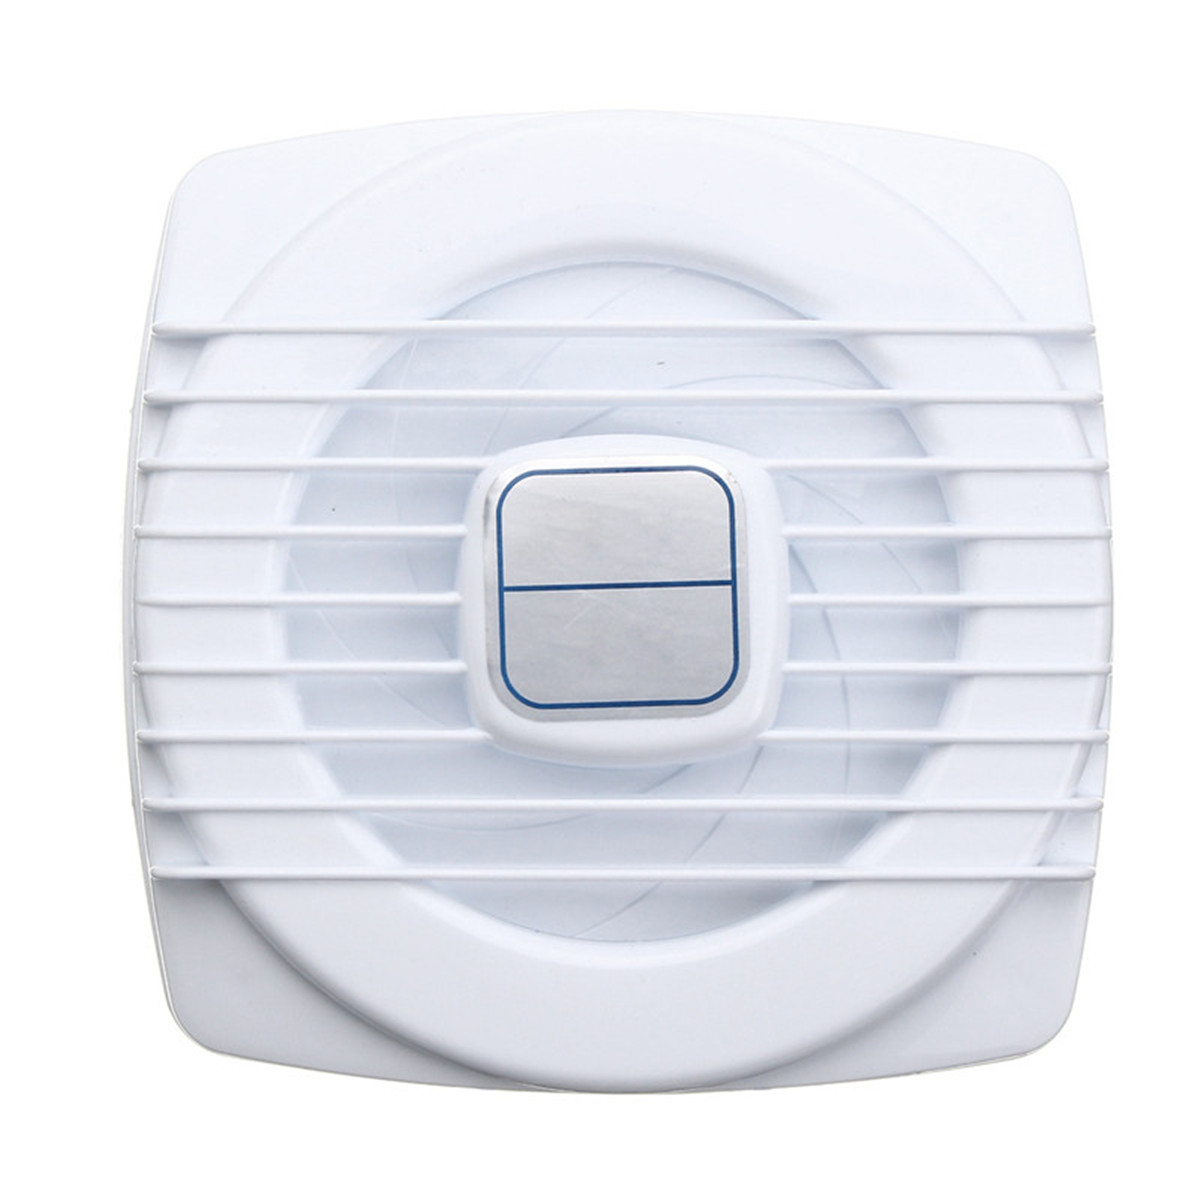 12W 6'' Pull Rope Exhaust Fan Kitchen Bathroom Toilet Small Air Conditioning Appliance Extractor Fan Ventilation Low Noise 220V 6